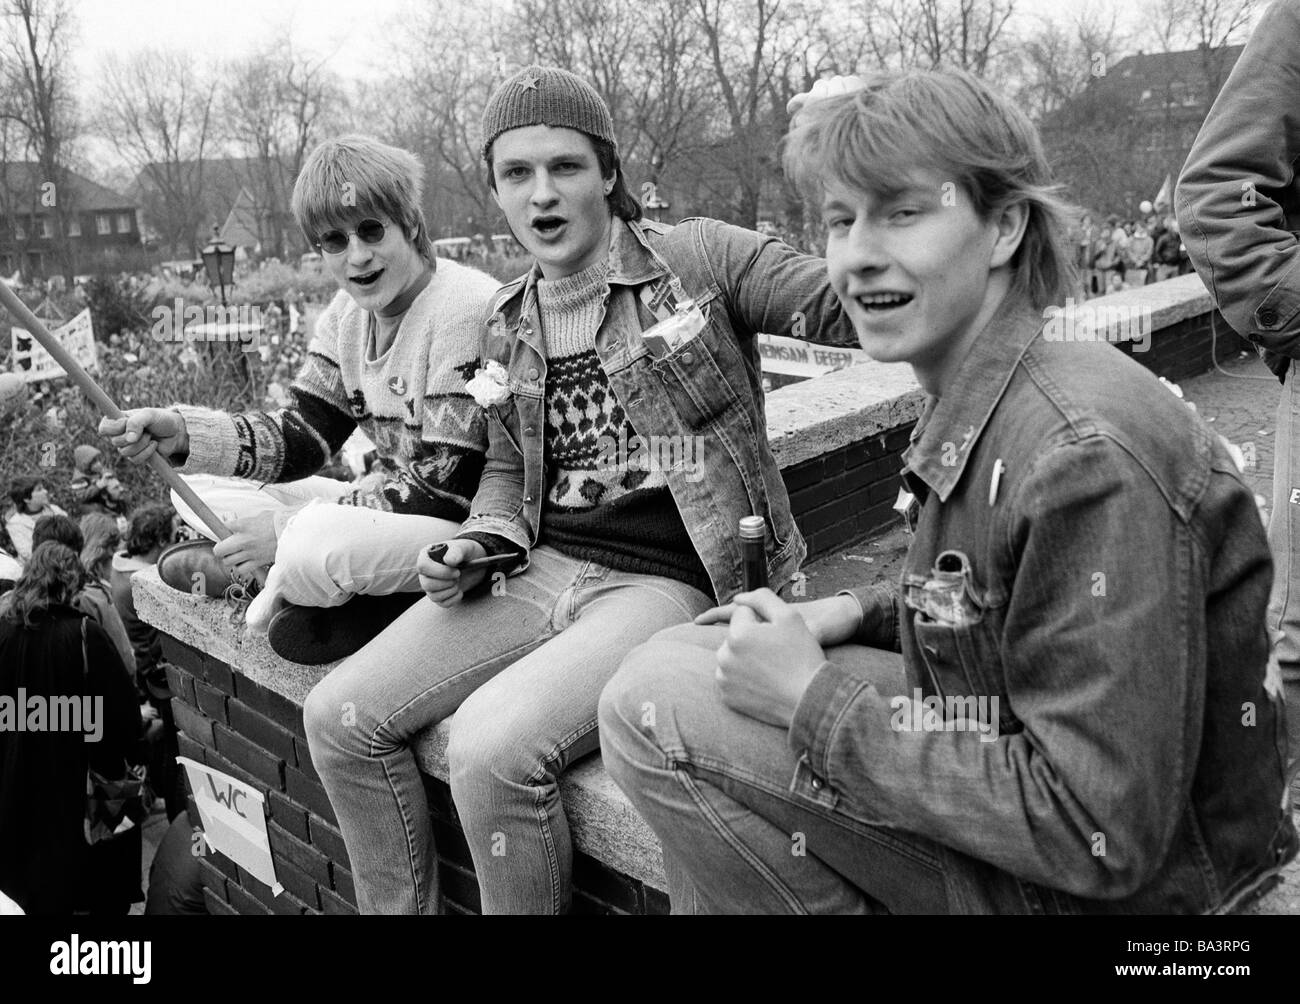 Eighties, black and white photo, people, three teenagers sit on a wall having fun, leisurewear, jeans suit, jeans - Stock Image